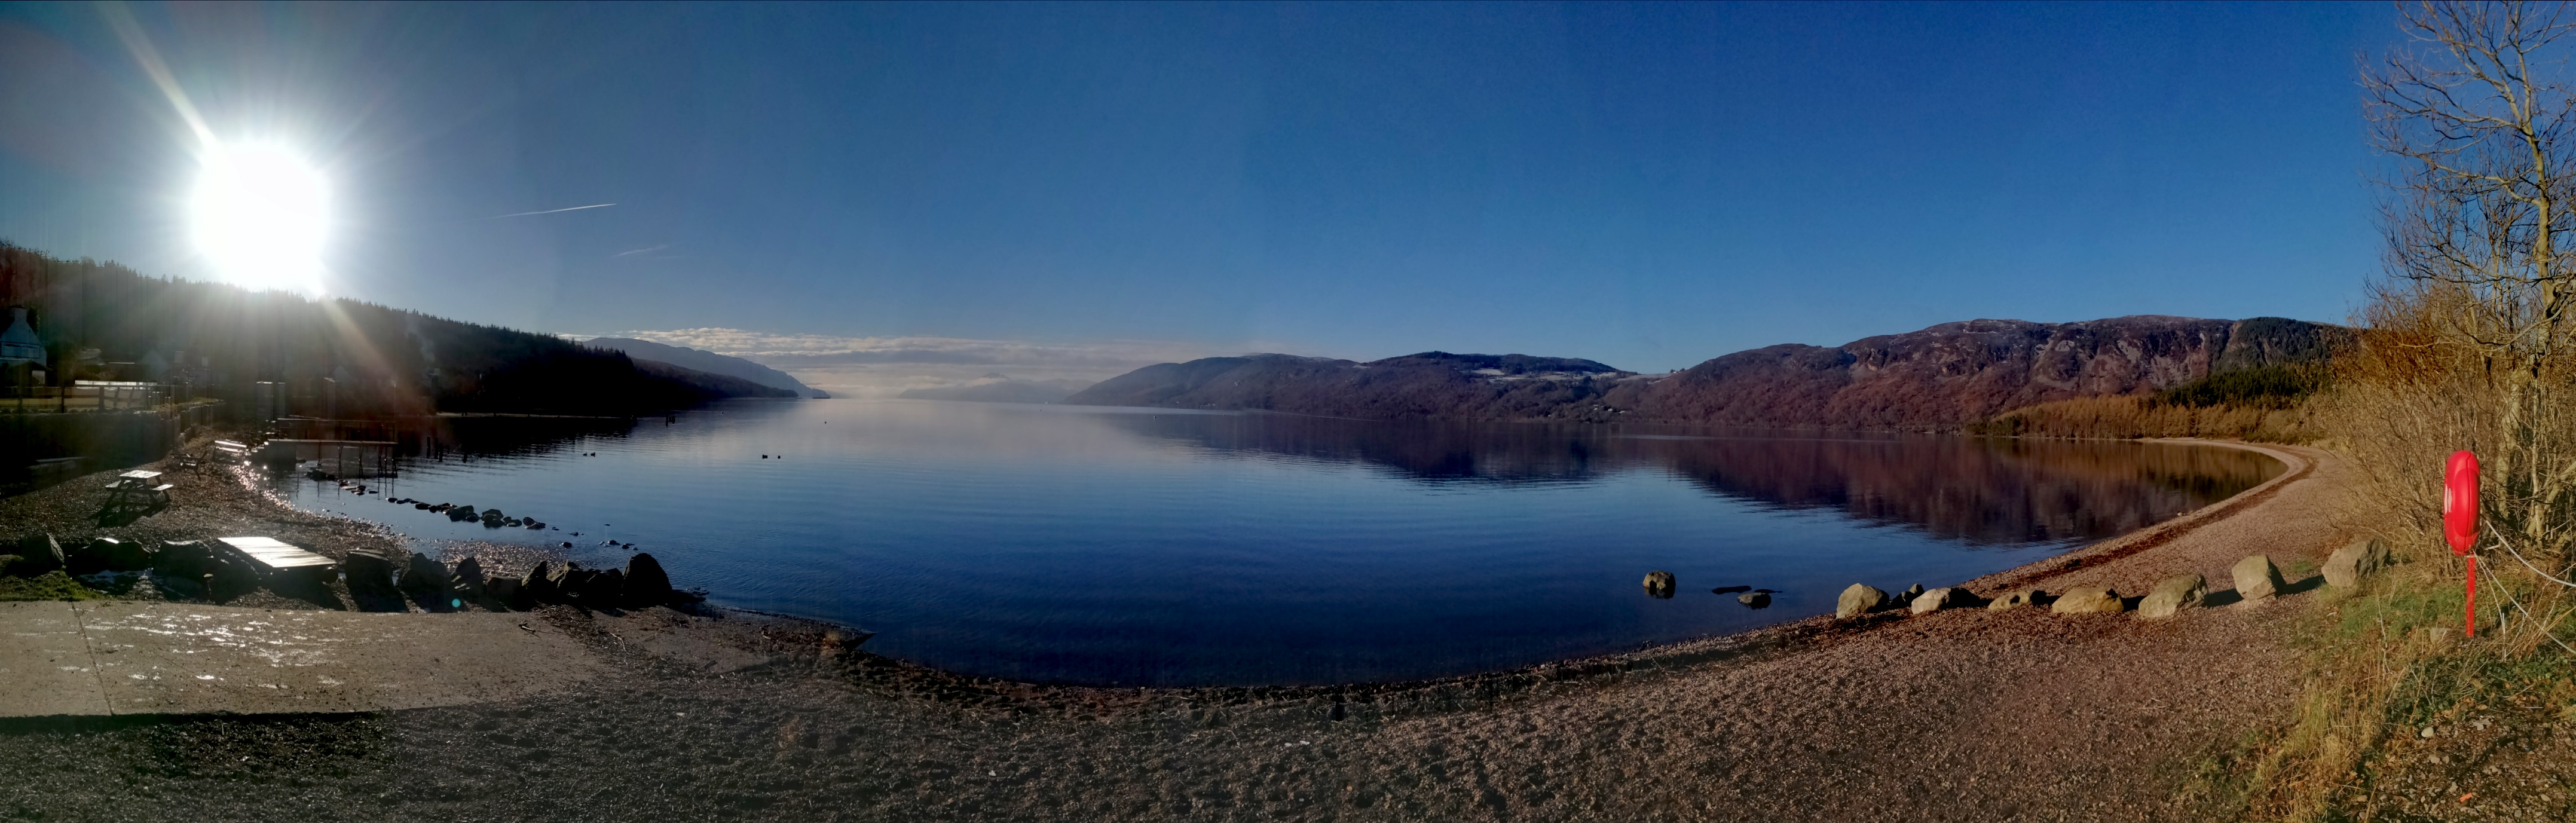 Winter sunshine on Loch Ness.